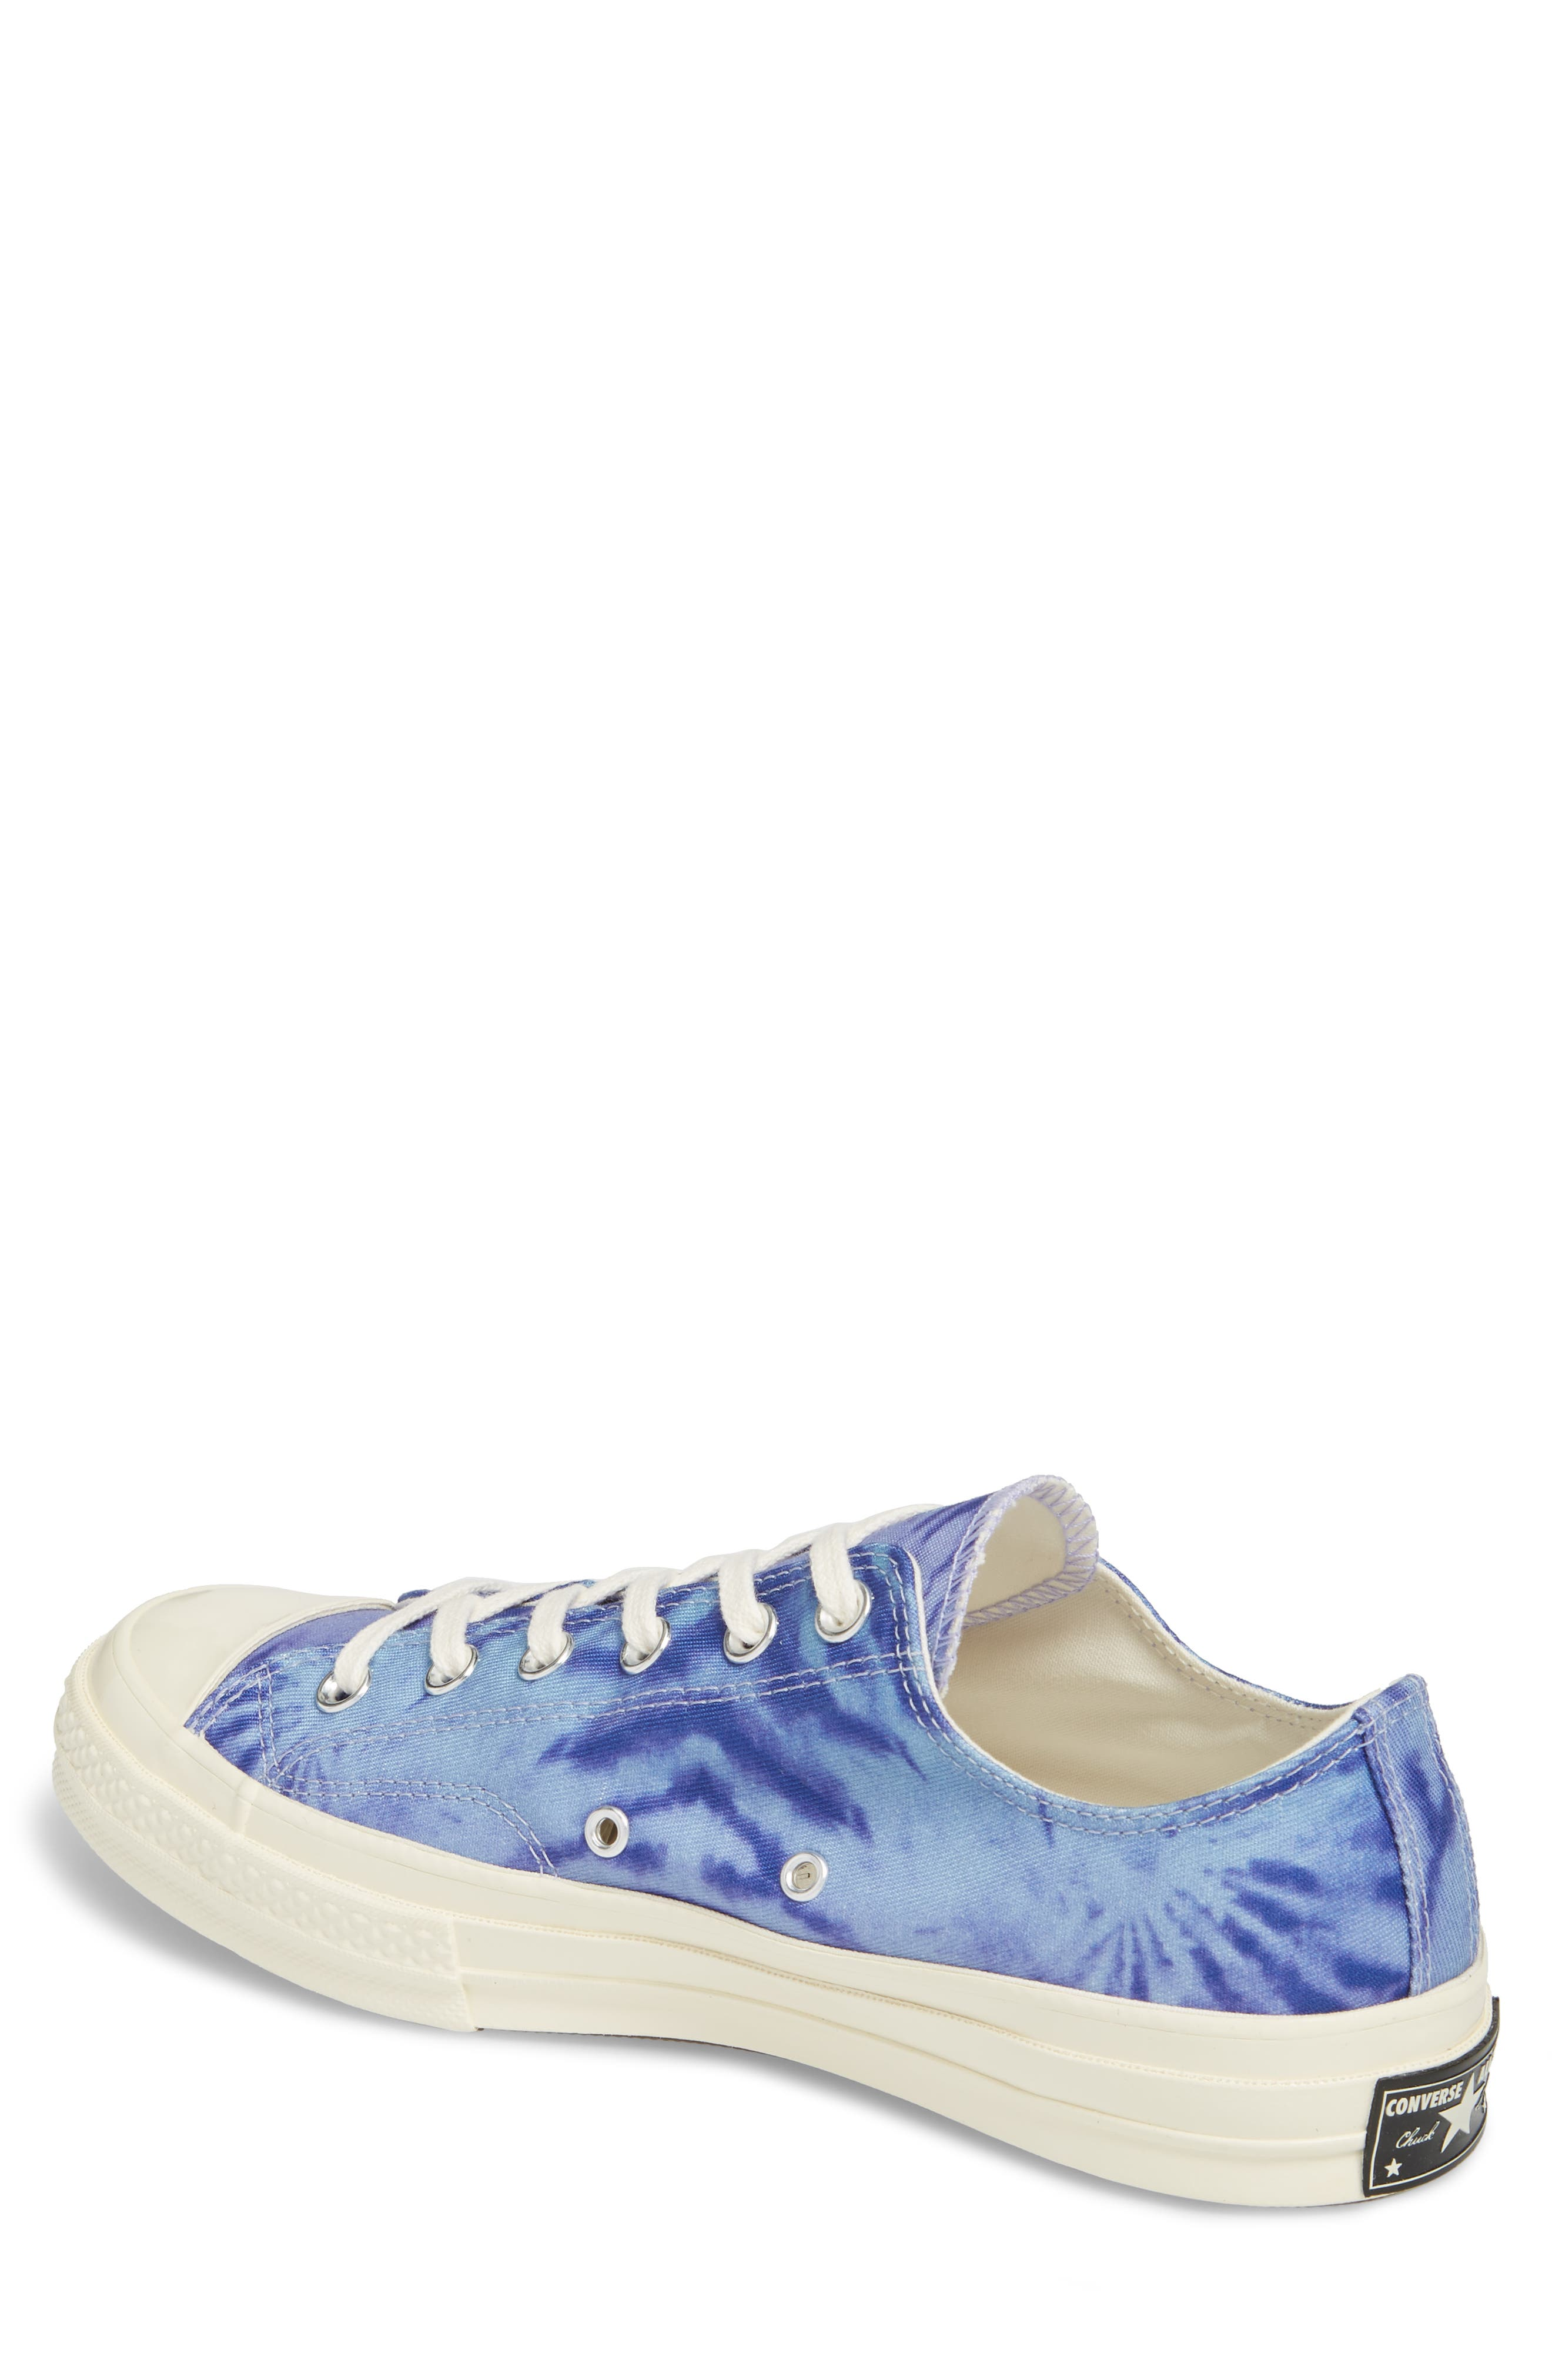 Chuck Taylor<sup>®</sup> All Star<sup>®</sup> 70 Tie Dye Low Top Sneaker,                             Alternate thumbnail 2, color,                             SHORELINE BLUE